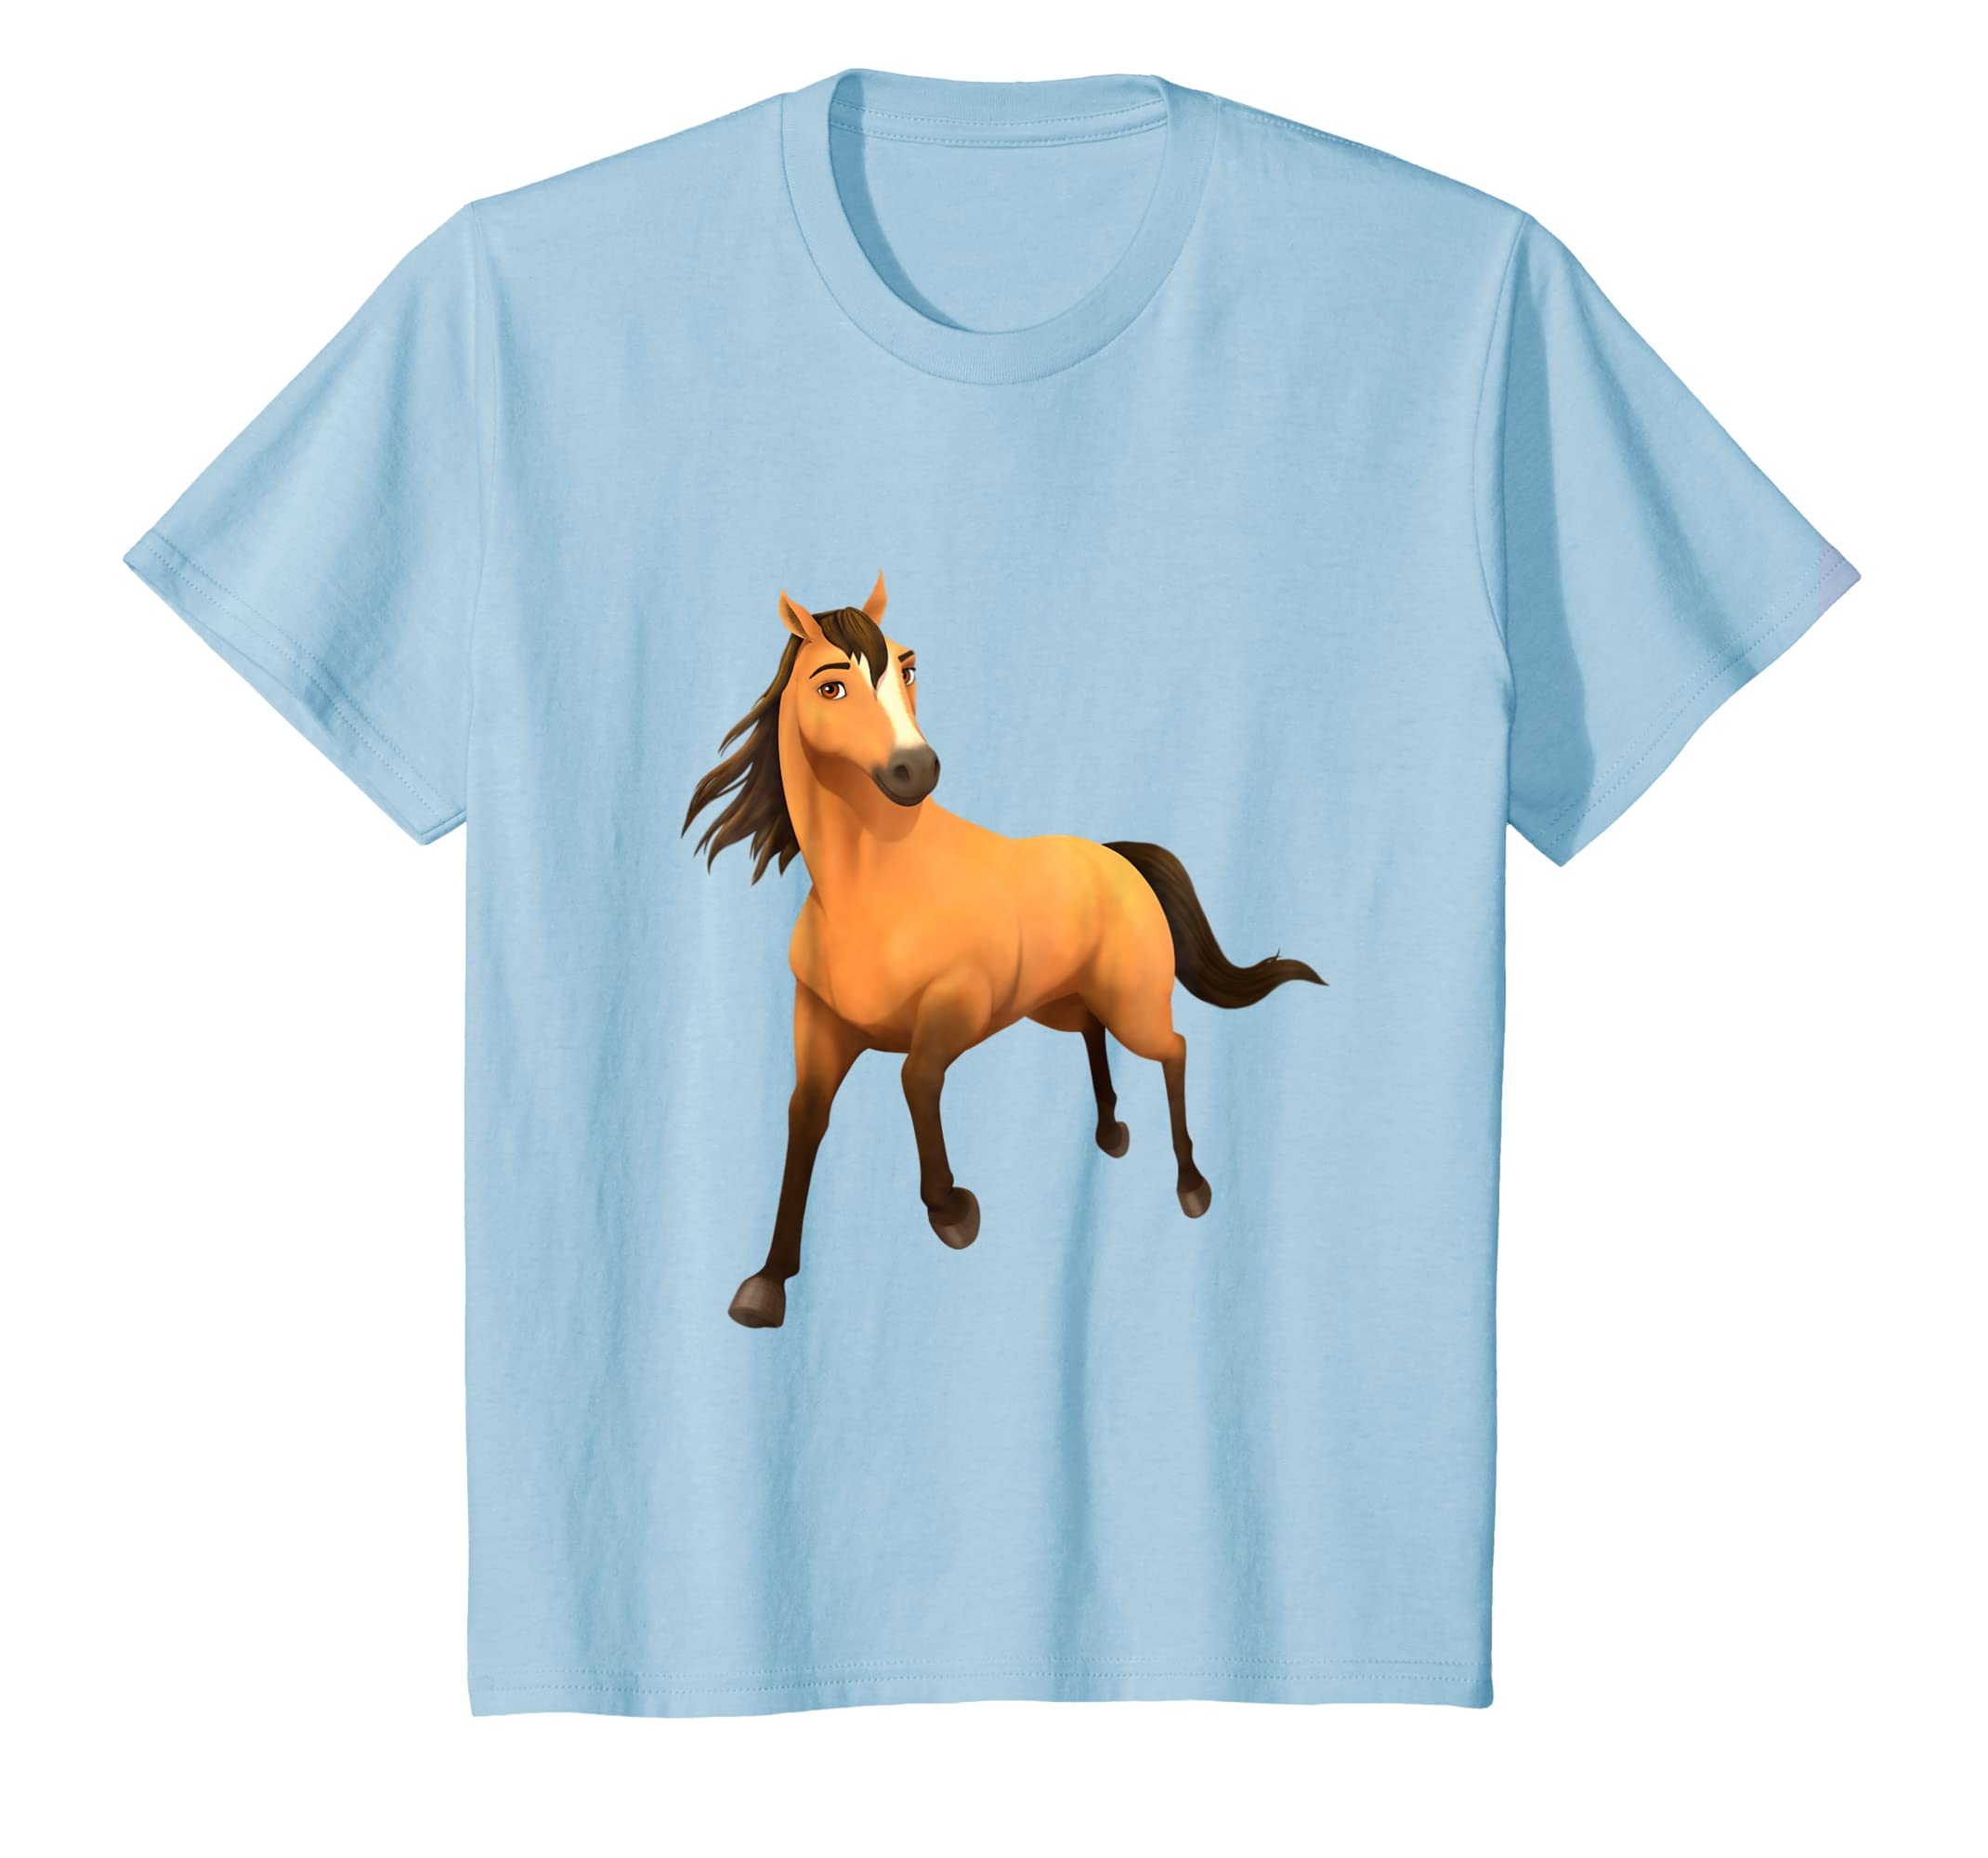 87a130255 Amazon.com: Kids DreamWorks Spirit Riding Free - Spirit Horse T-Shirt:  Clothing